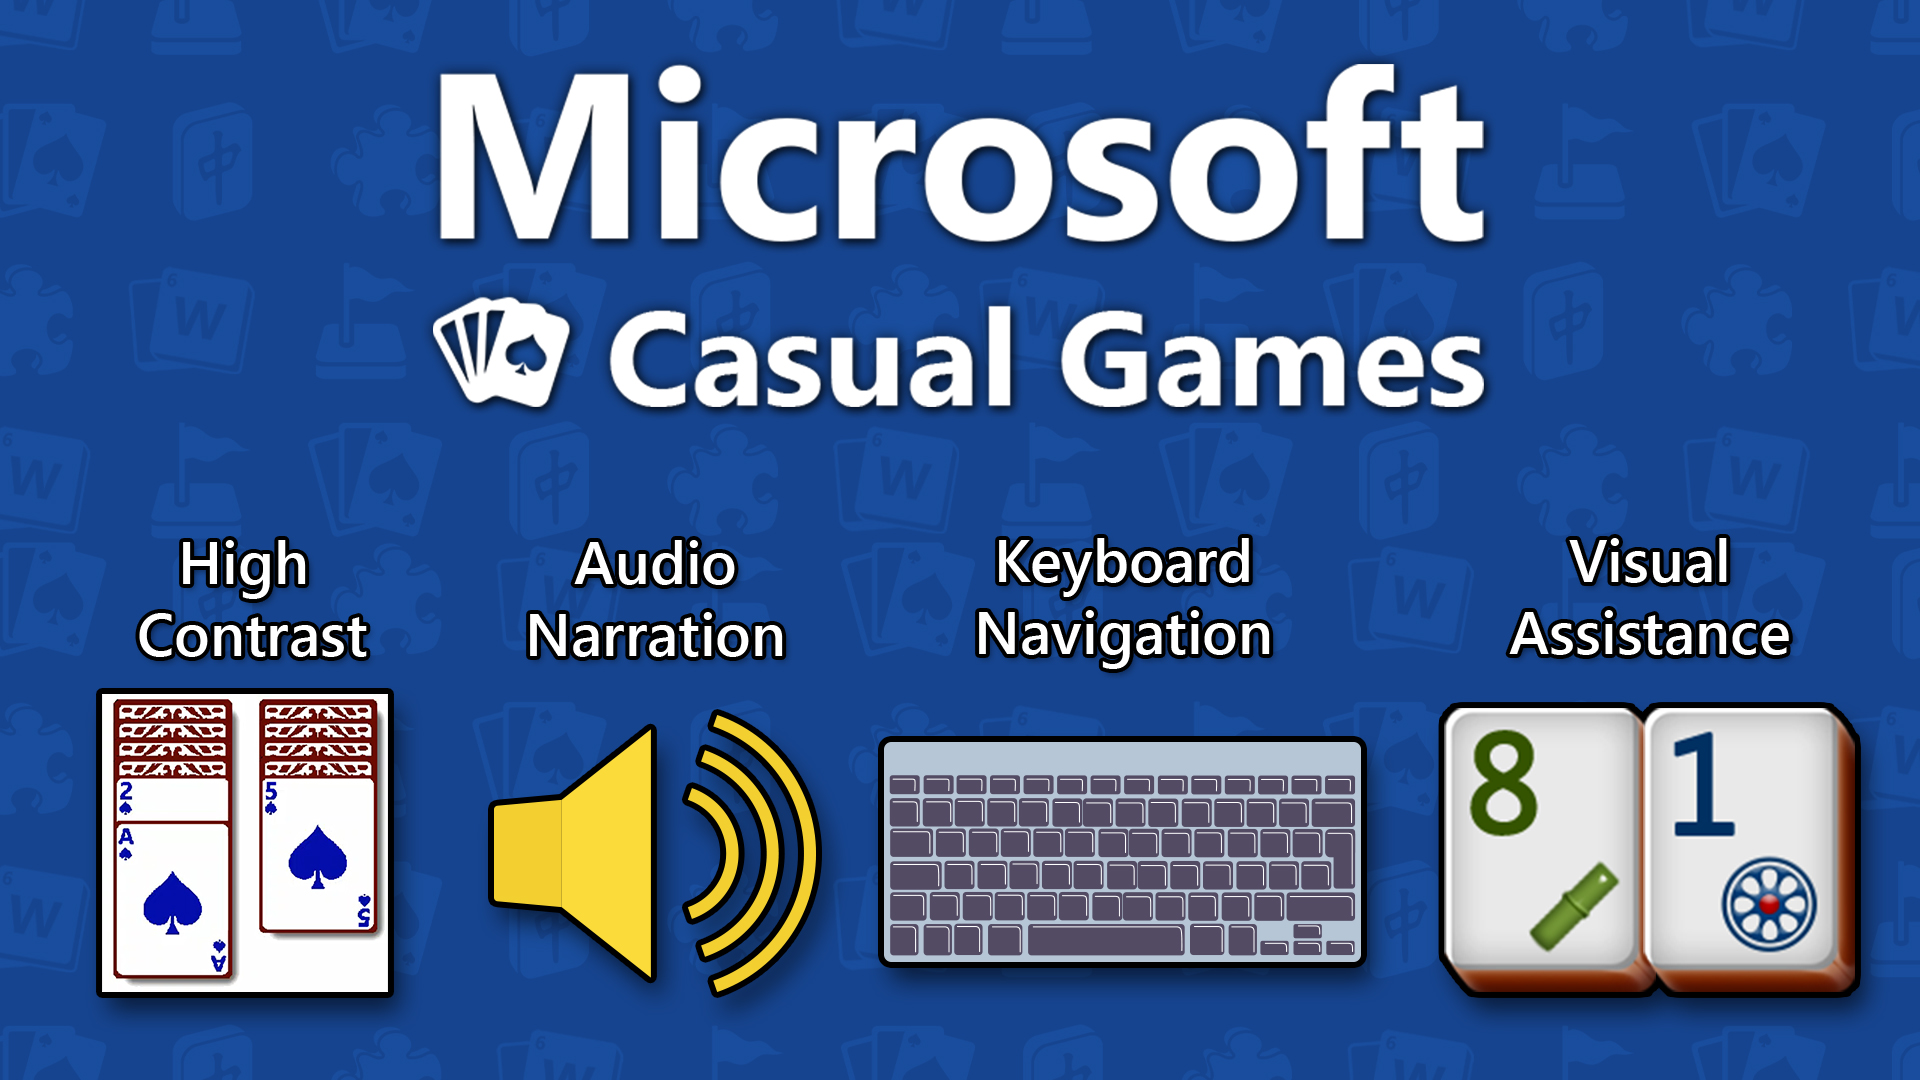 The Microsoft Casual Games logo with four graphics representing High Contrast, Audio Narration, Keyboard Navigation, and Visual Assistance.